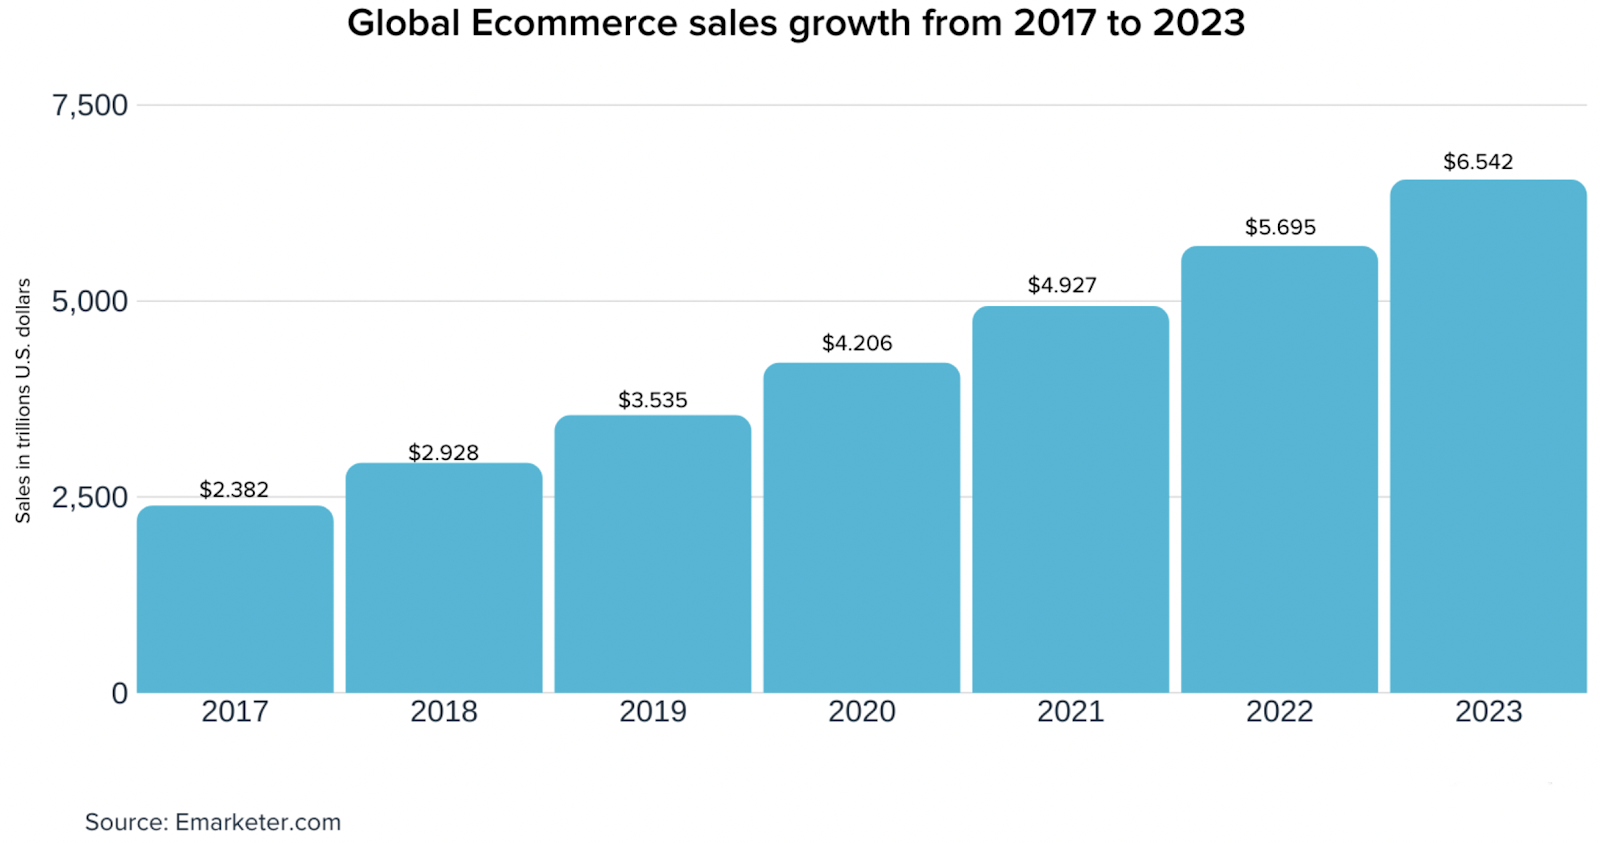 Global ecommerce sales growth from 2017 to 2023